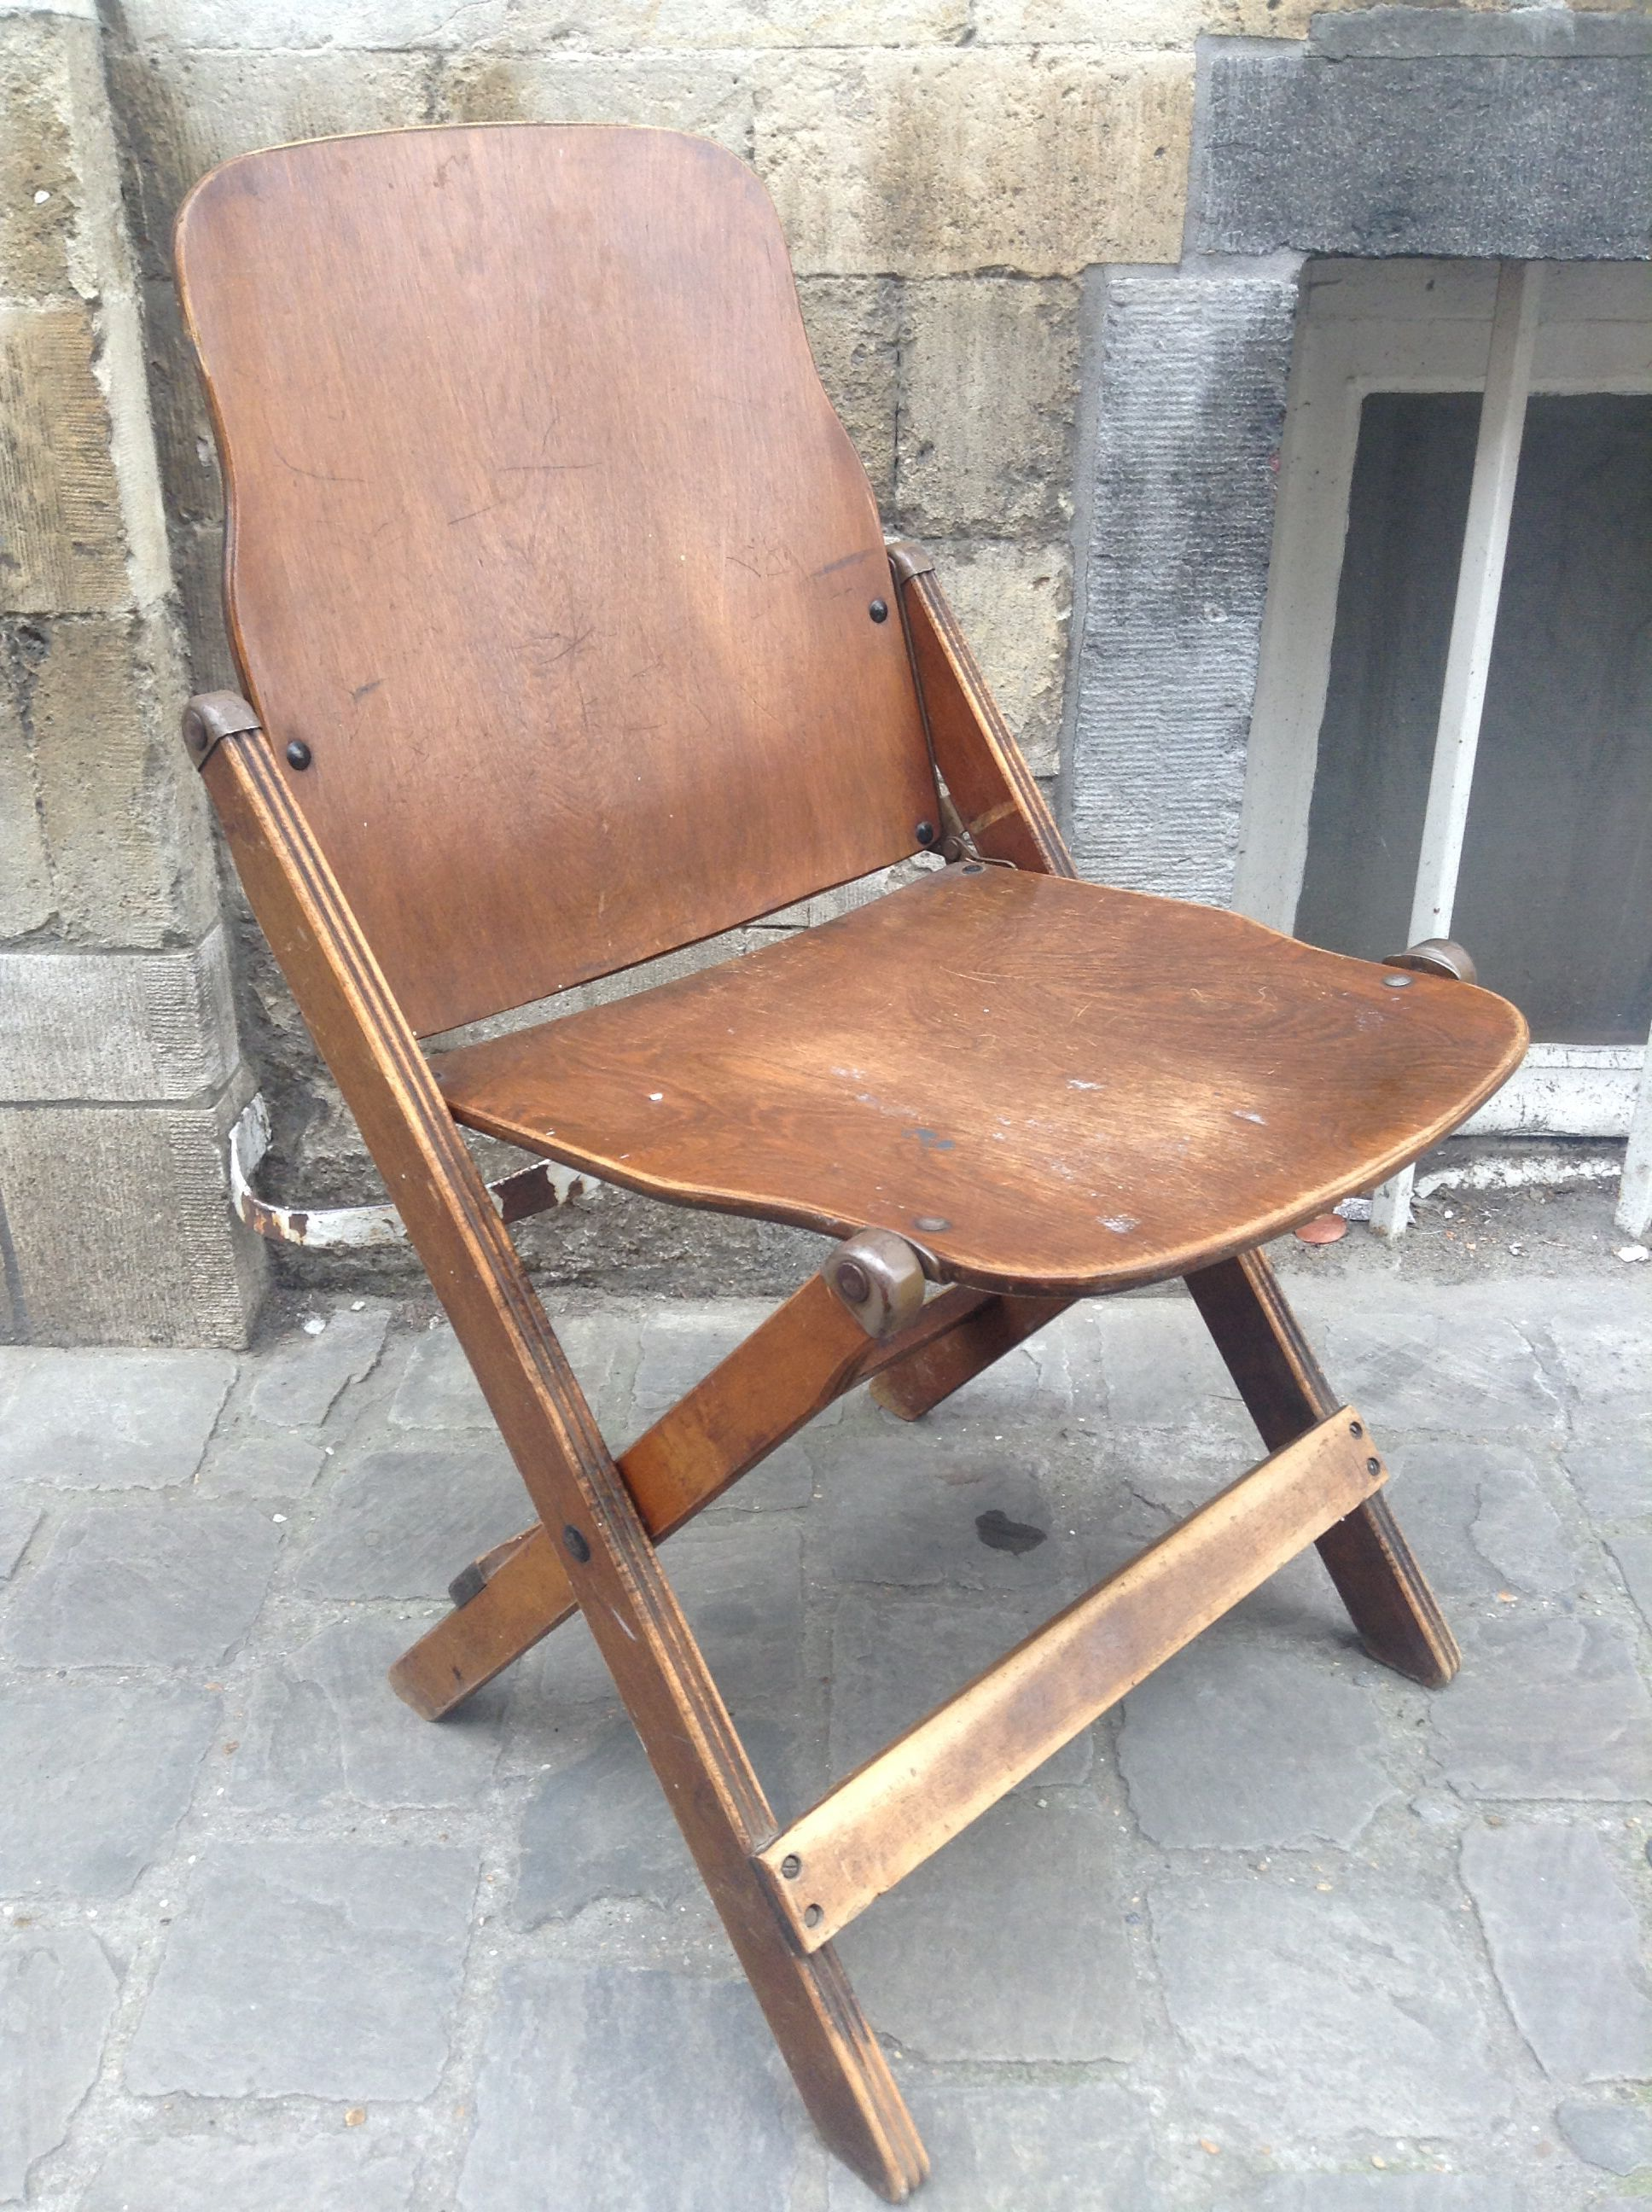 1940s Us Army Folding Chair As Used In The Field Or